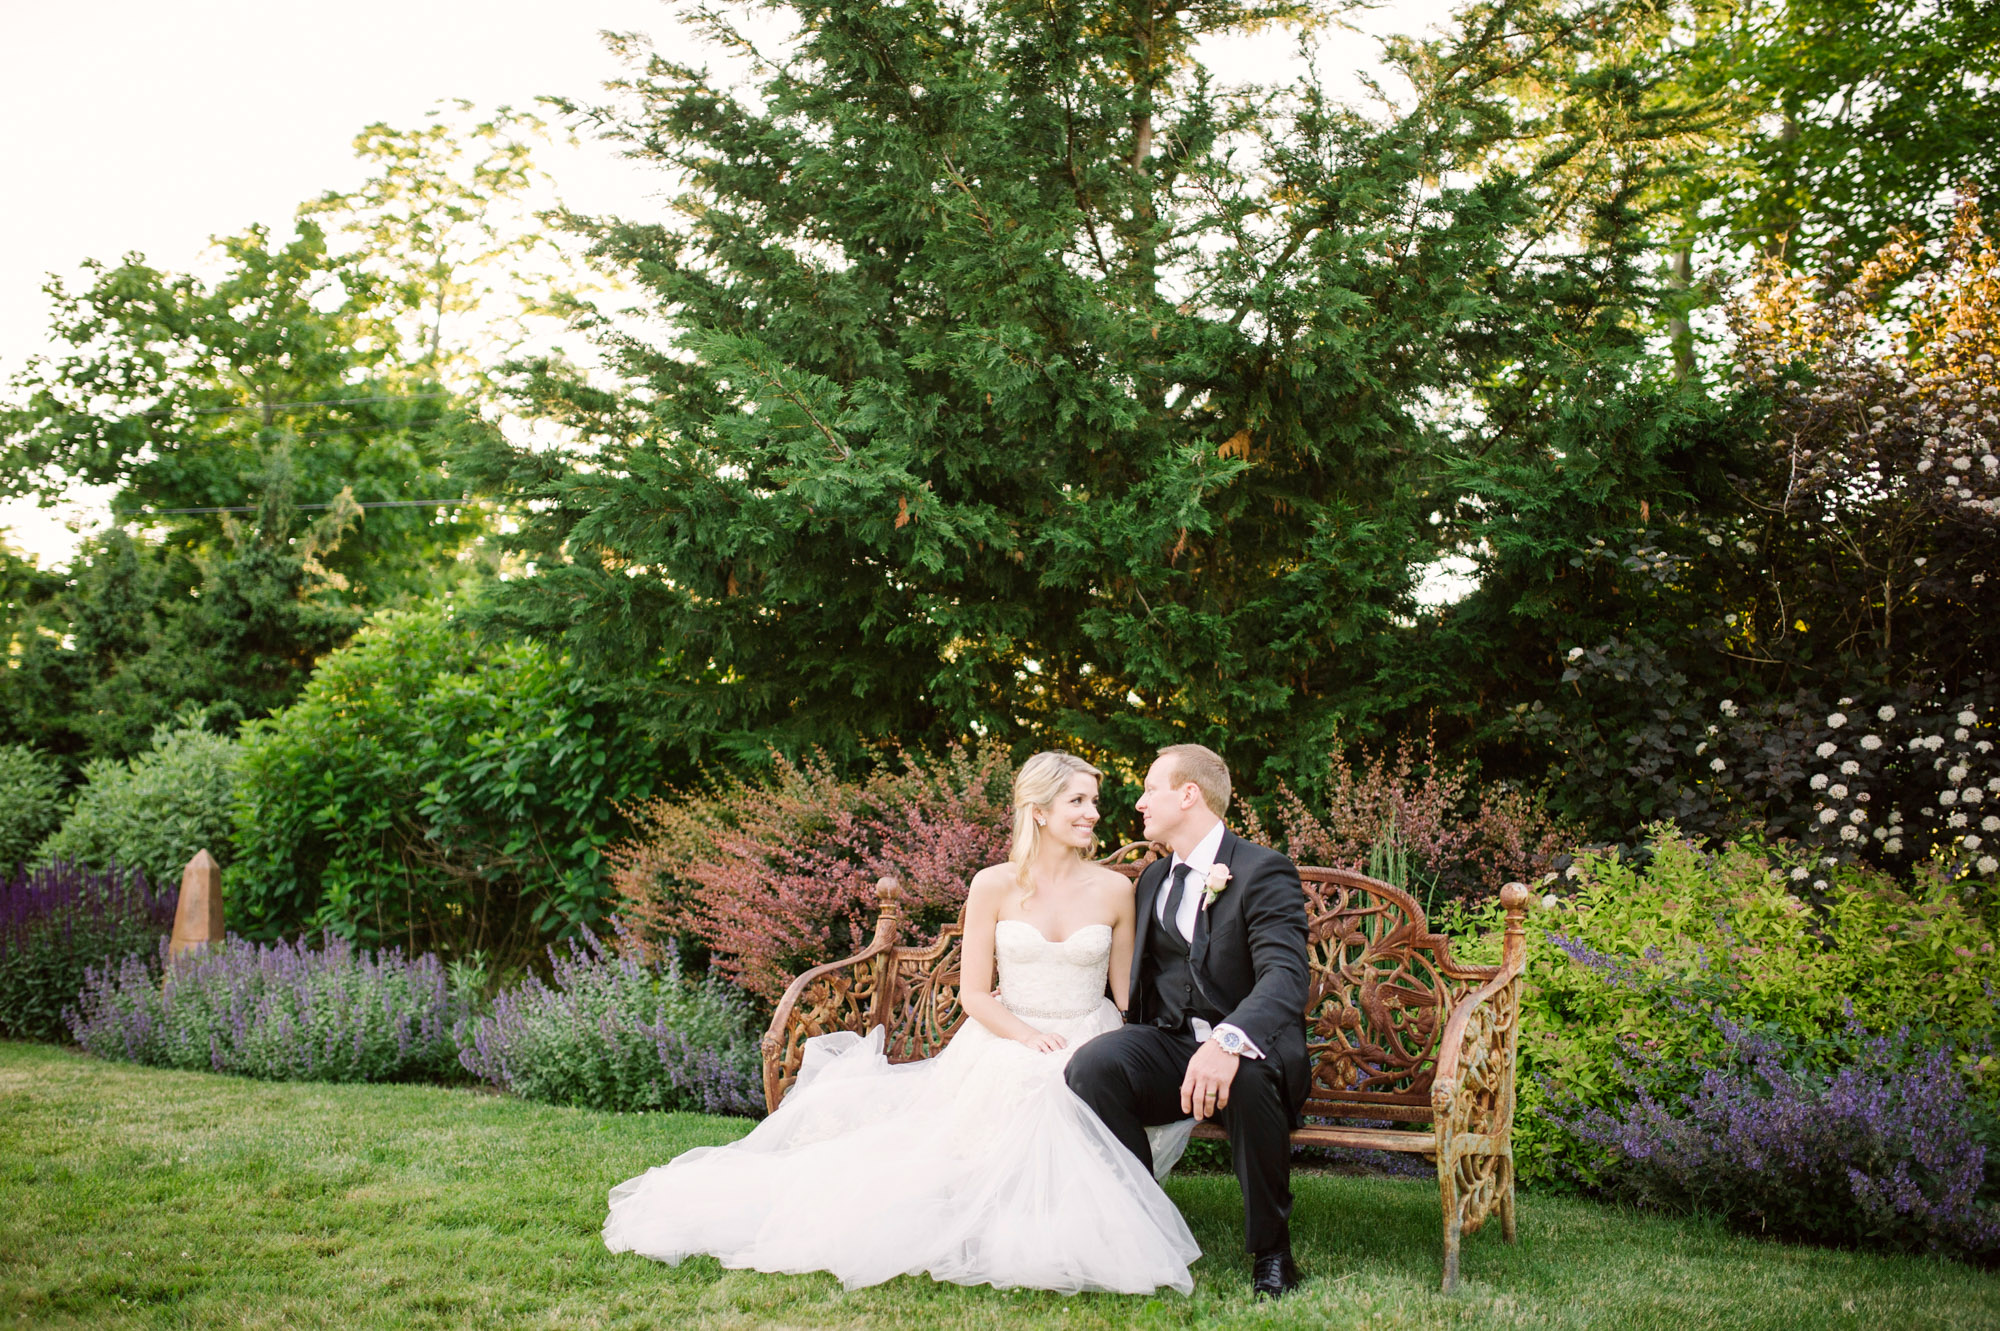 13Katy_Eddie_Talcott_House_Wedding_Westbrook_CT_Tanya_Salazar_Photography.jpg